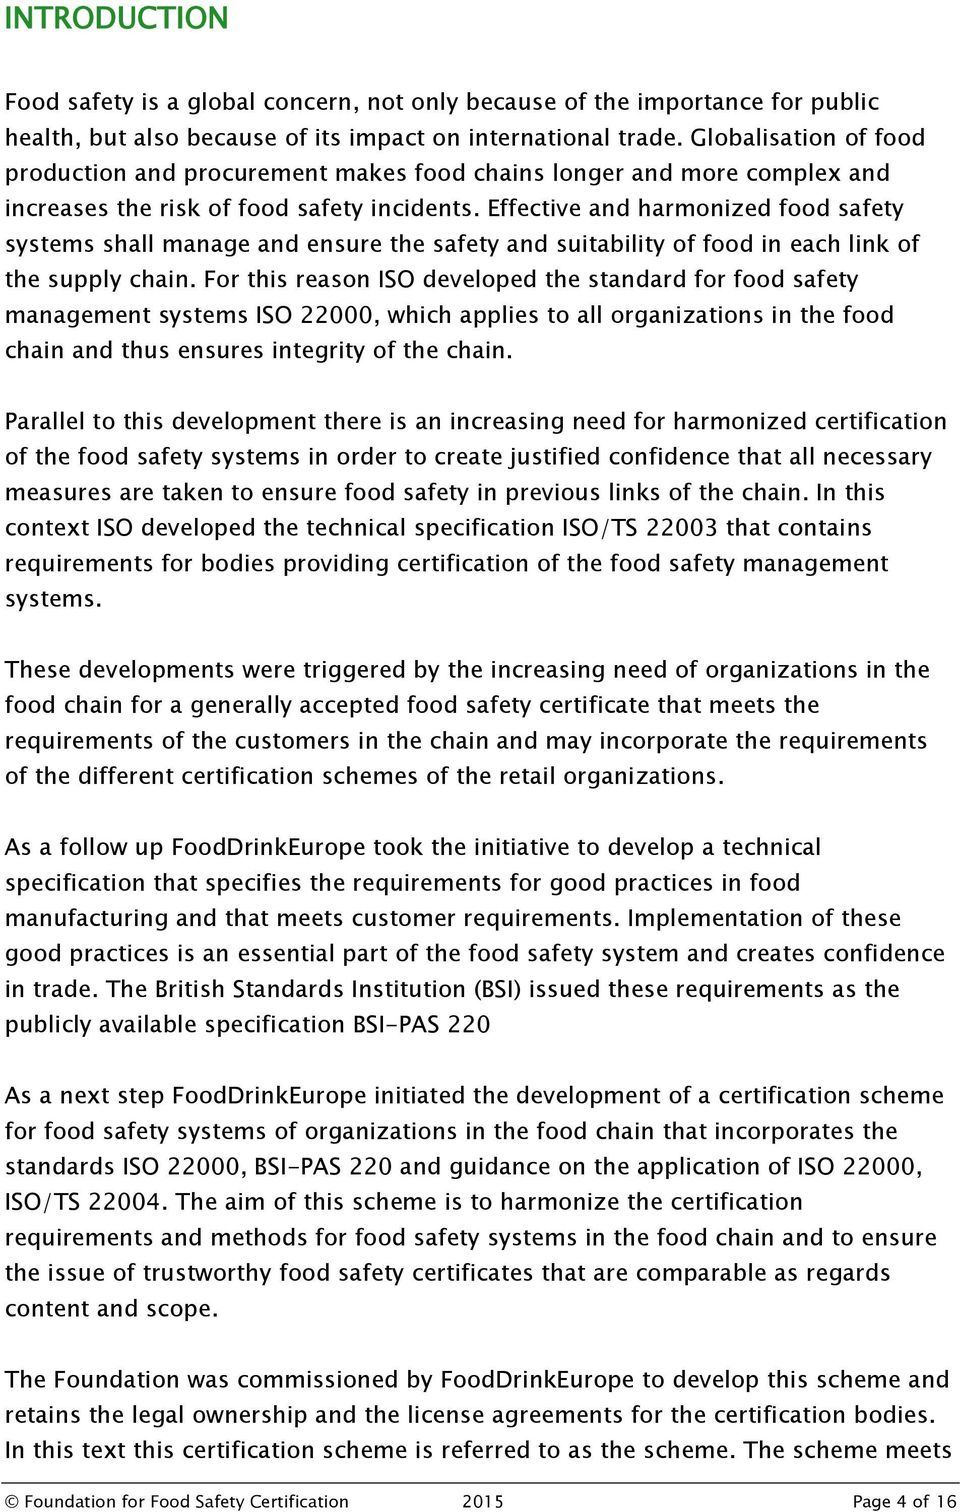 Effective and harmonized food safety systems shall manage and ensure the safety and suitability of food in each link of the supply chain.